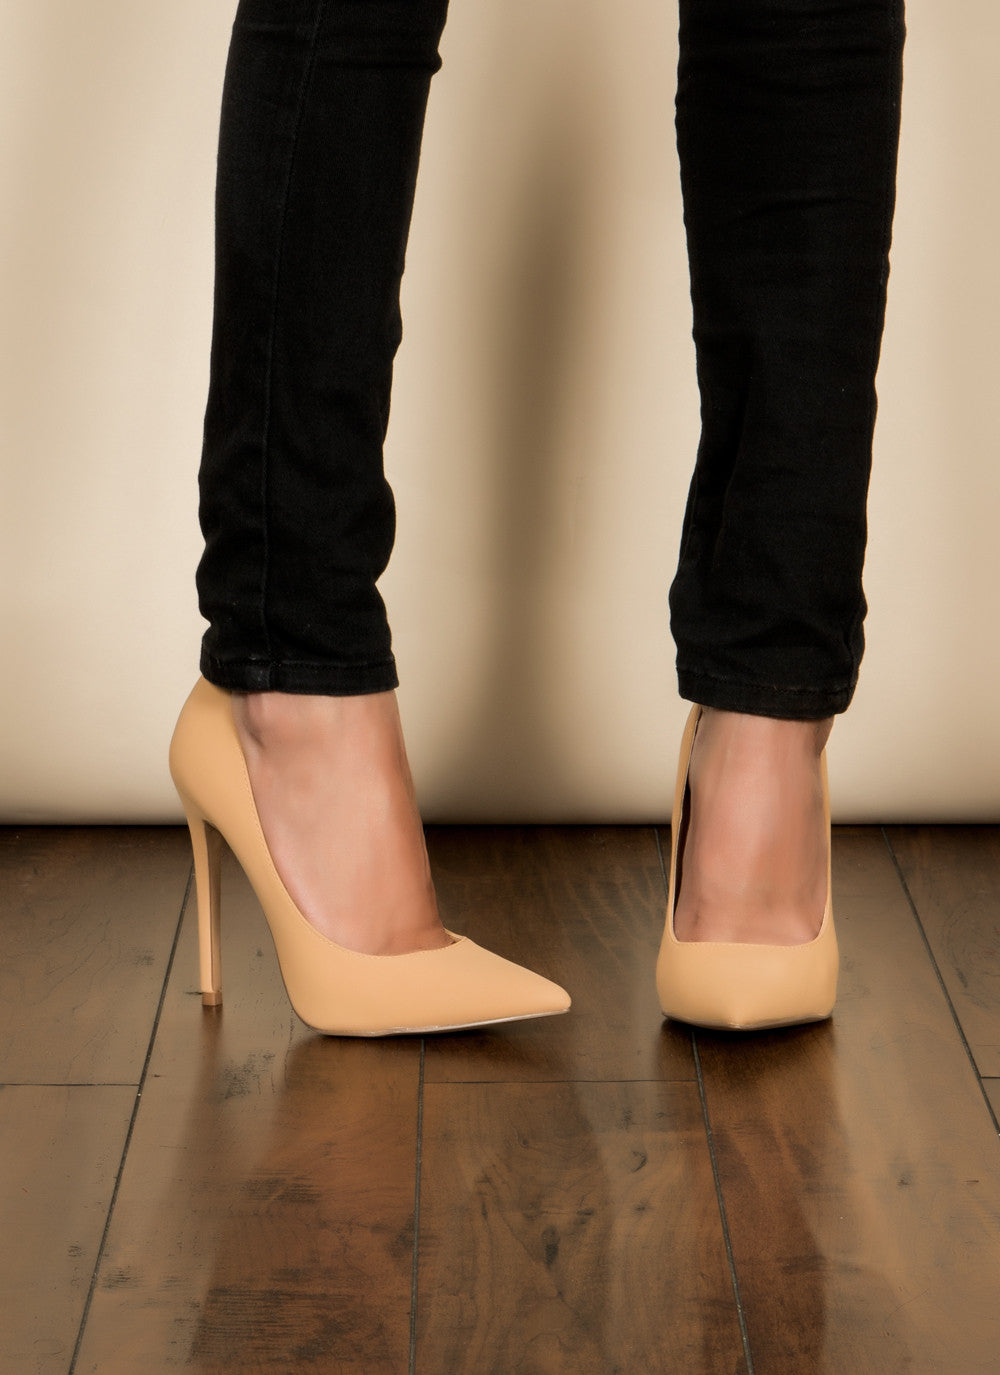 Camel Pumps , Shoes - Fashion Trend LA, Fashion Trend LA  - 2